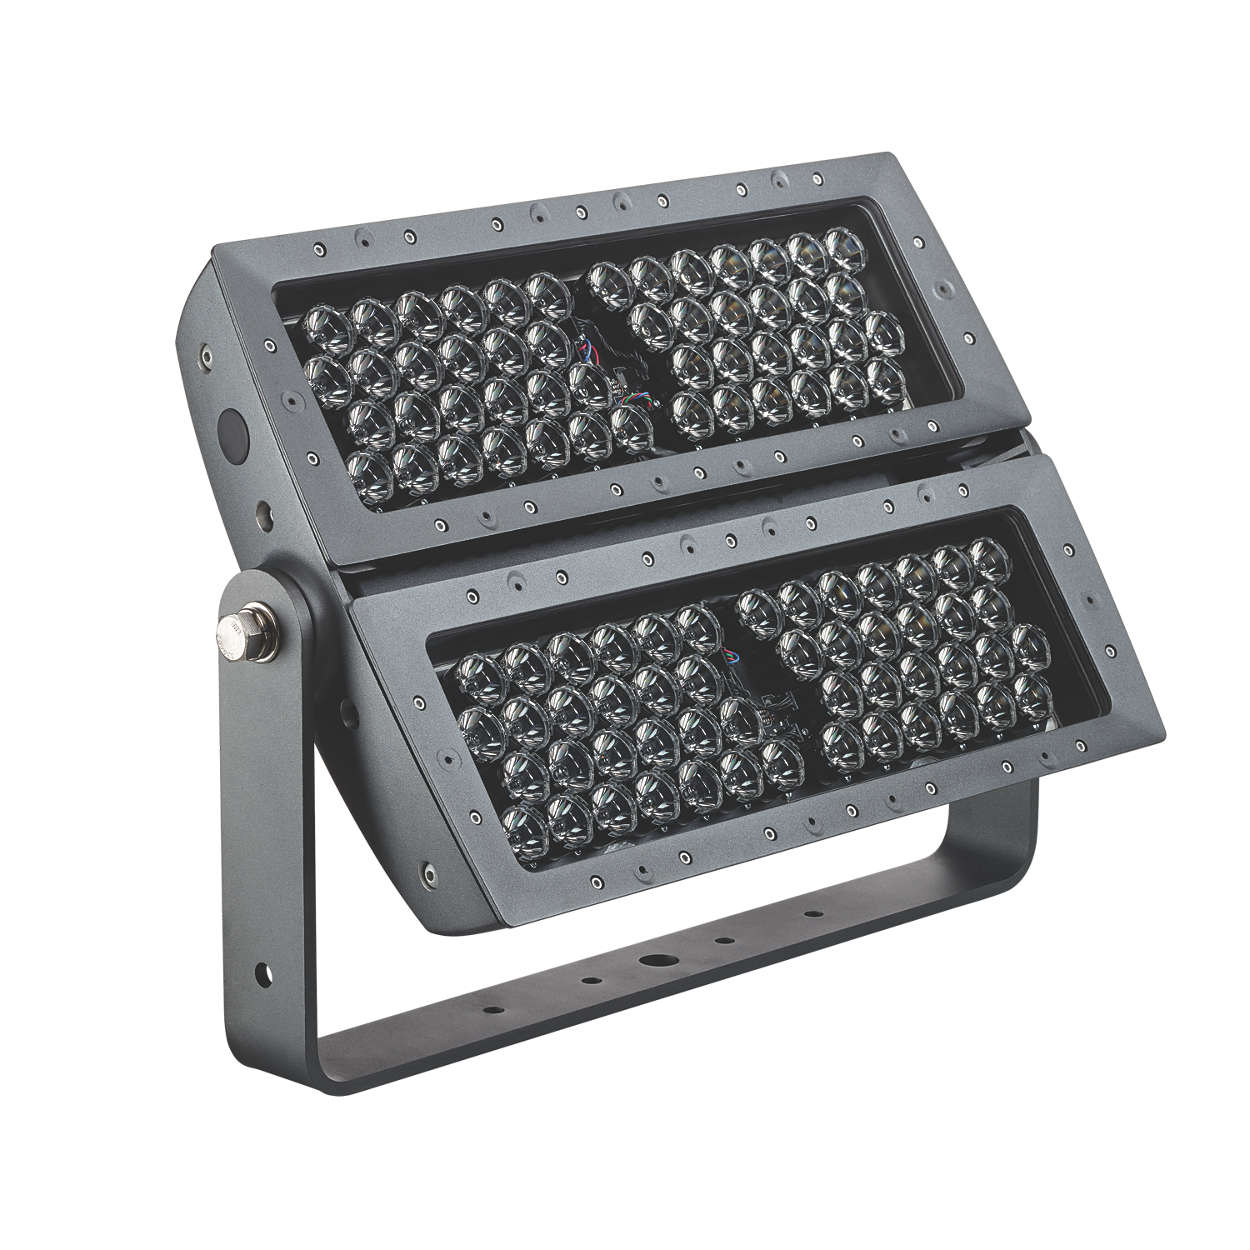 ColorReach Powercore gen2 RGBW/RGBA – High-performance architectural floodlight